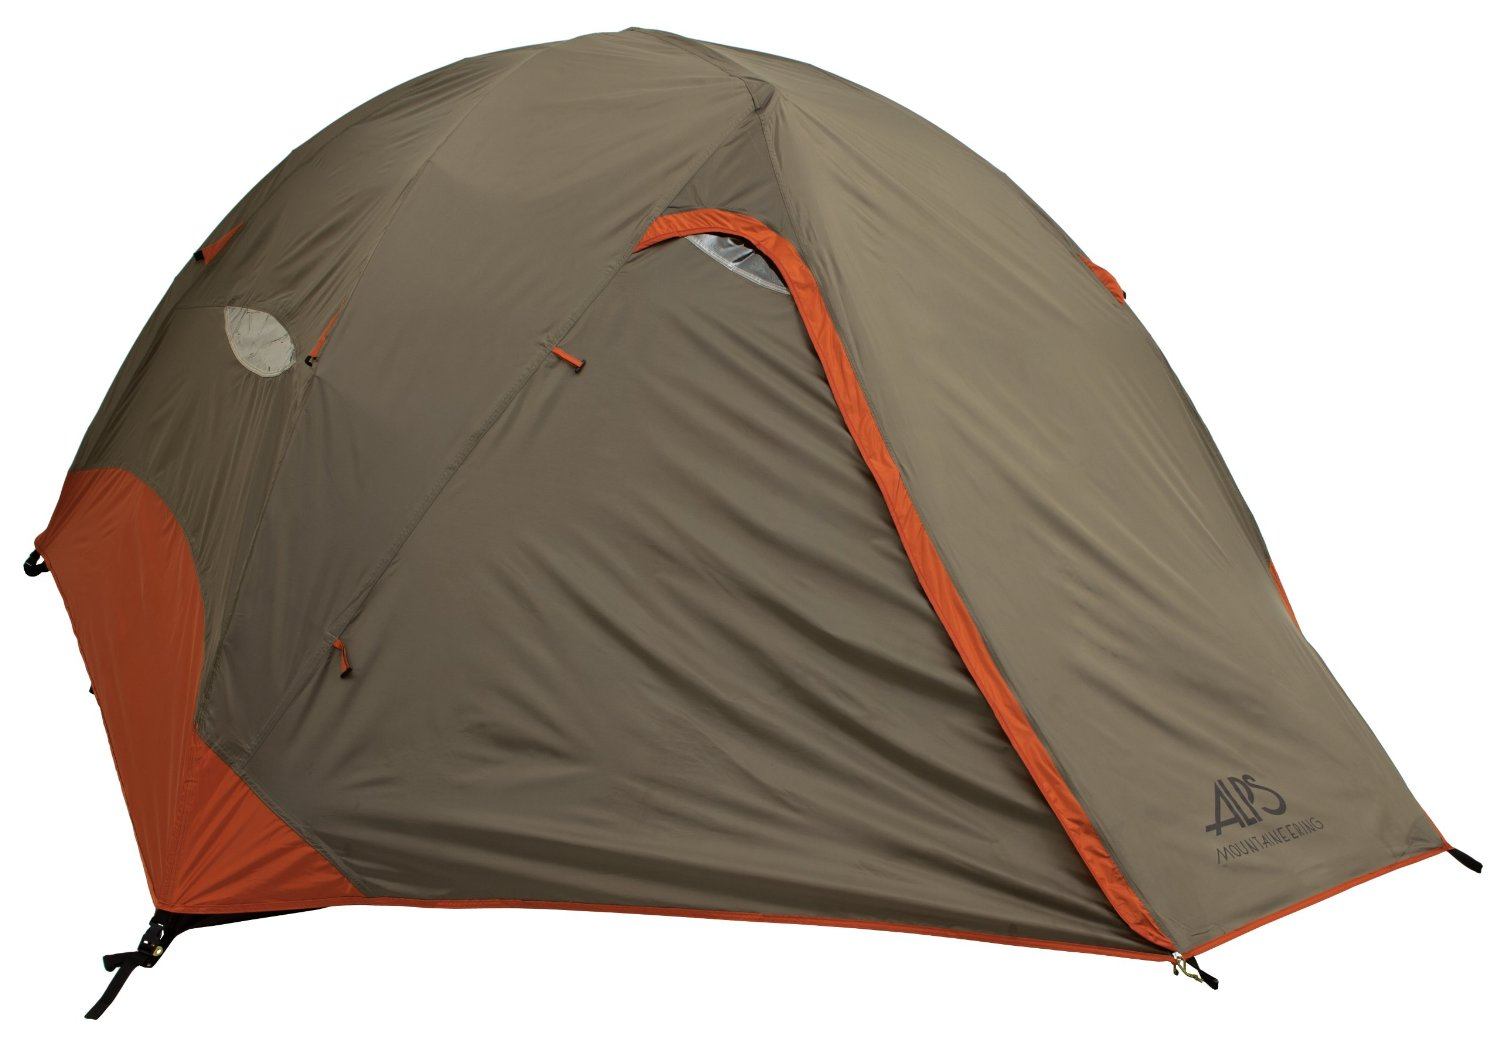 Four Season Tents For Extreme Camping